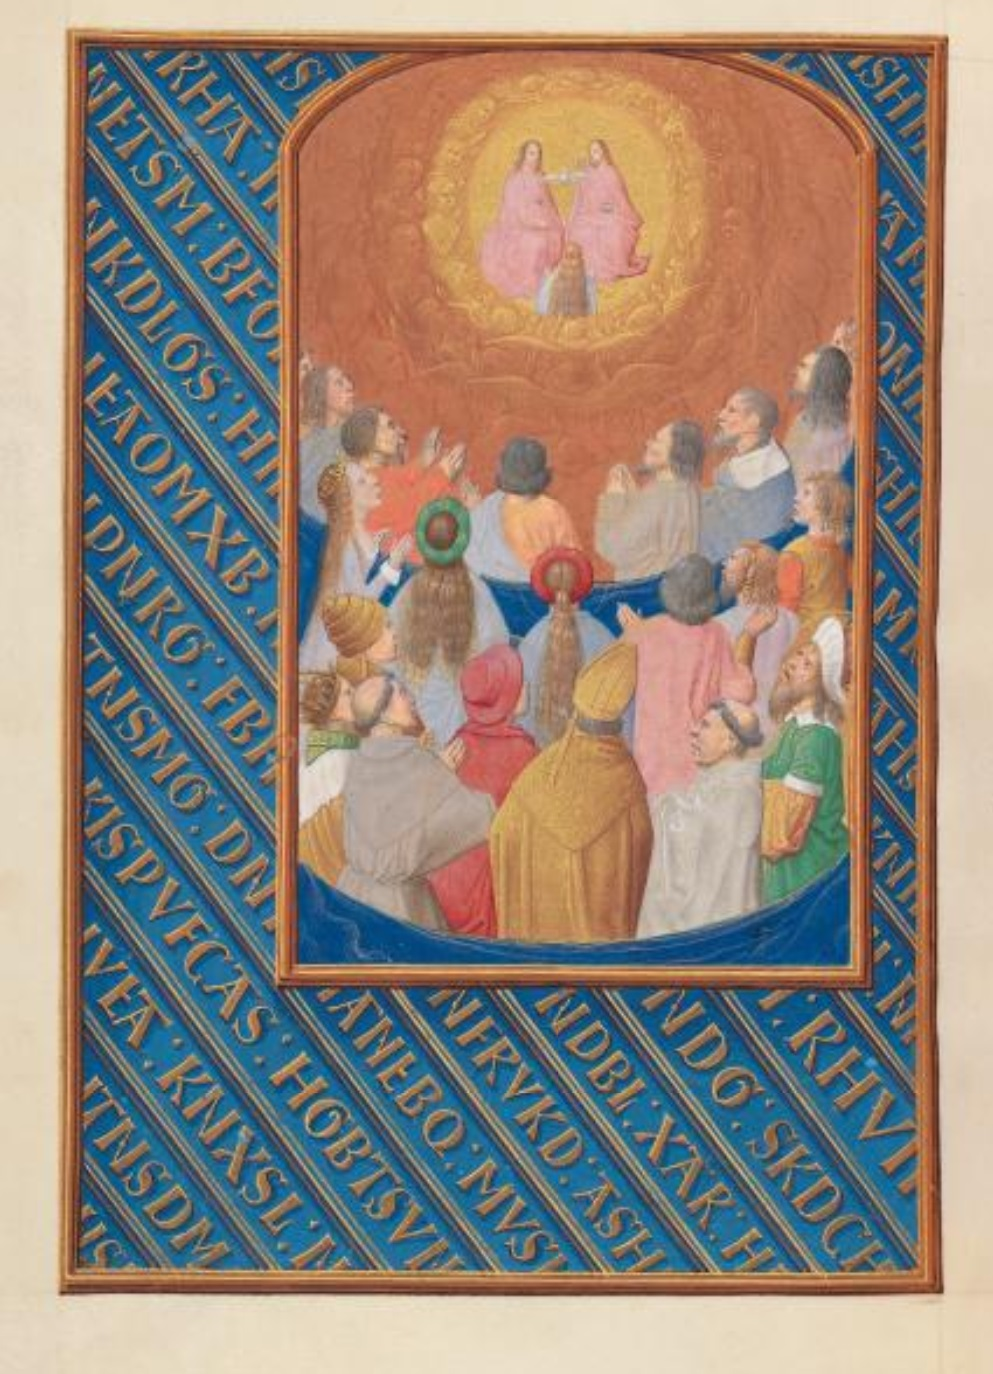 1500 ca Master of the First Prayerbook of Maximillian Hours of Queen Isabella the Catholic, Cleveland Museum of Arts, Fol. 37v, Court of Heaven